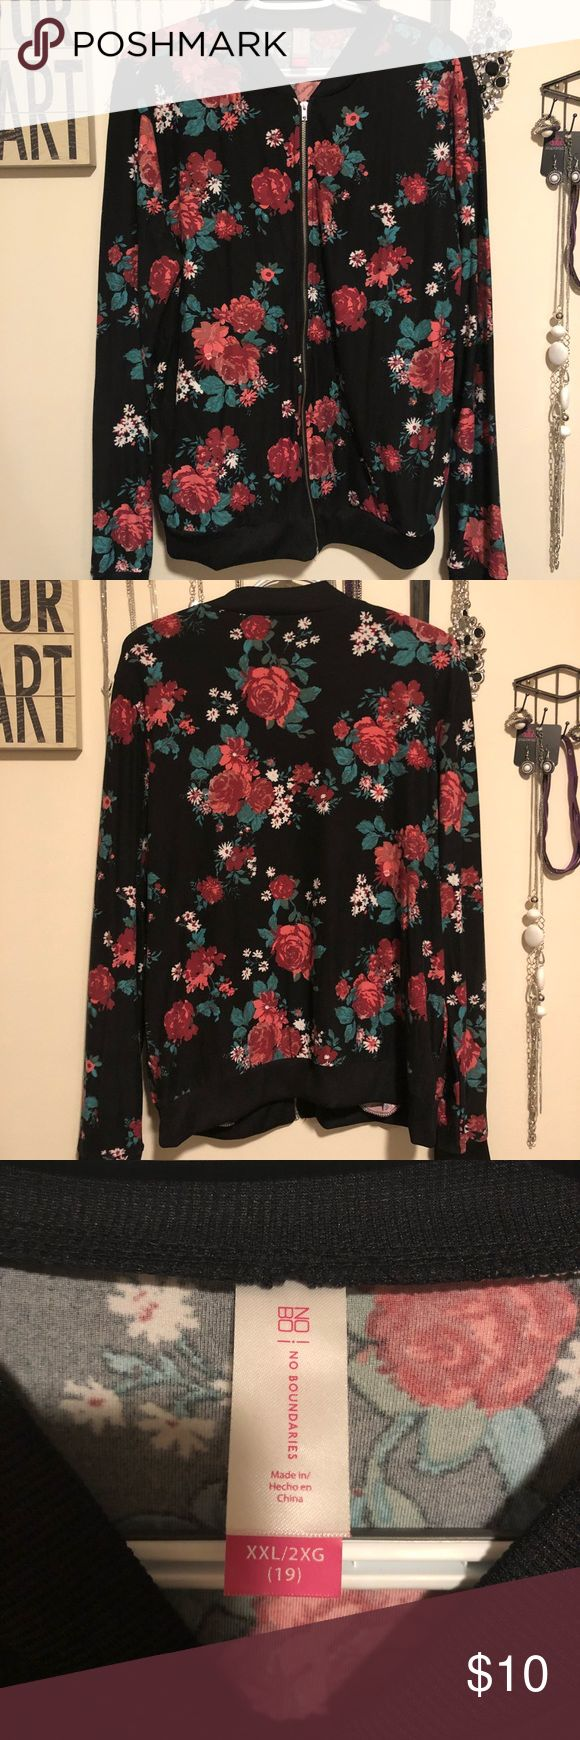 Floral zip up Only worn once floral zip up jacket. Great condition. Can be dressed up or down. Lightweight. Size xxl but fits more like an xl. No Boundaries Tops Tees - Long Sleeve